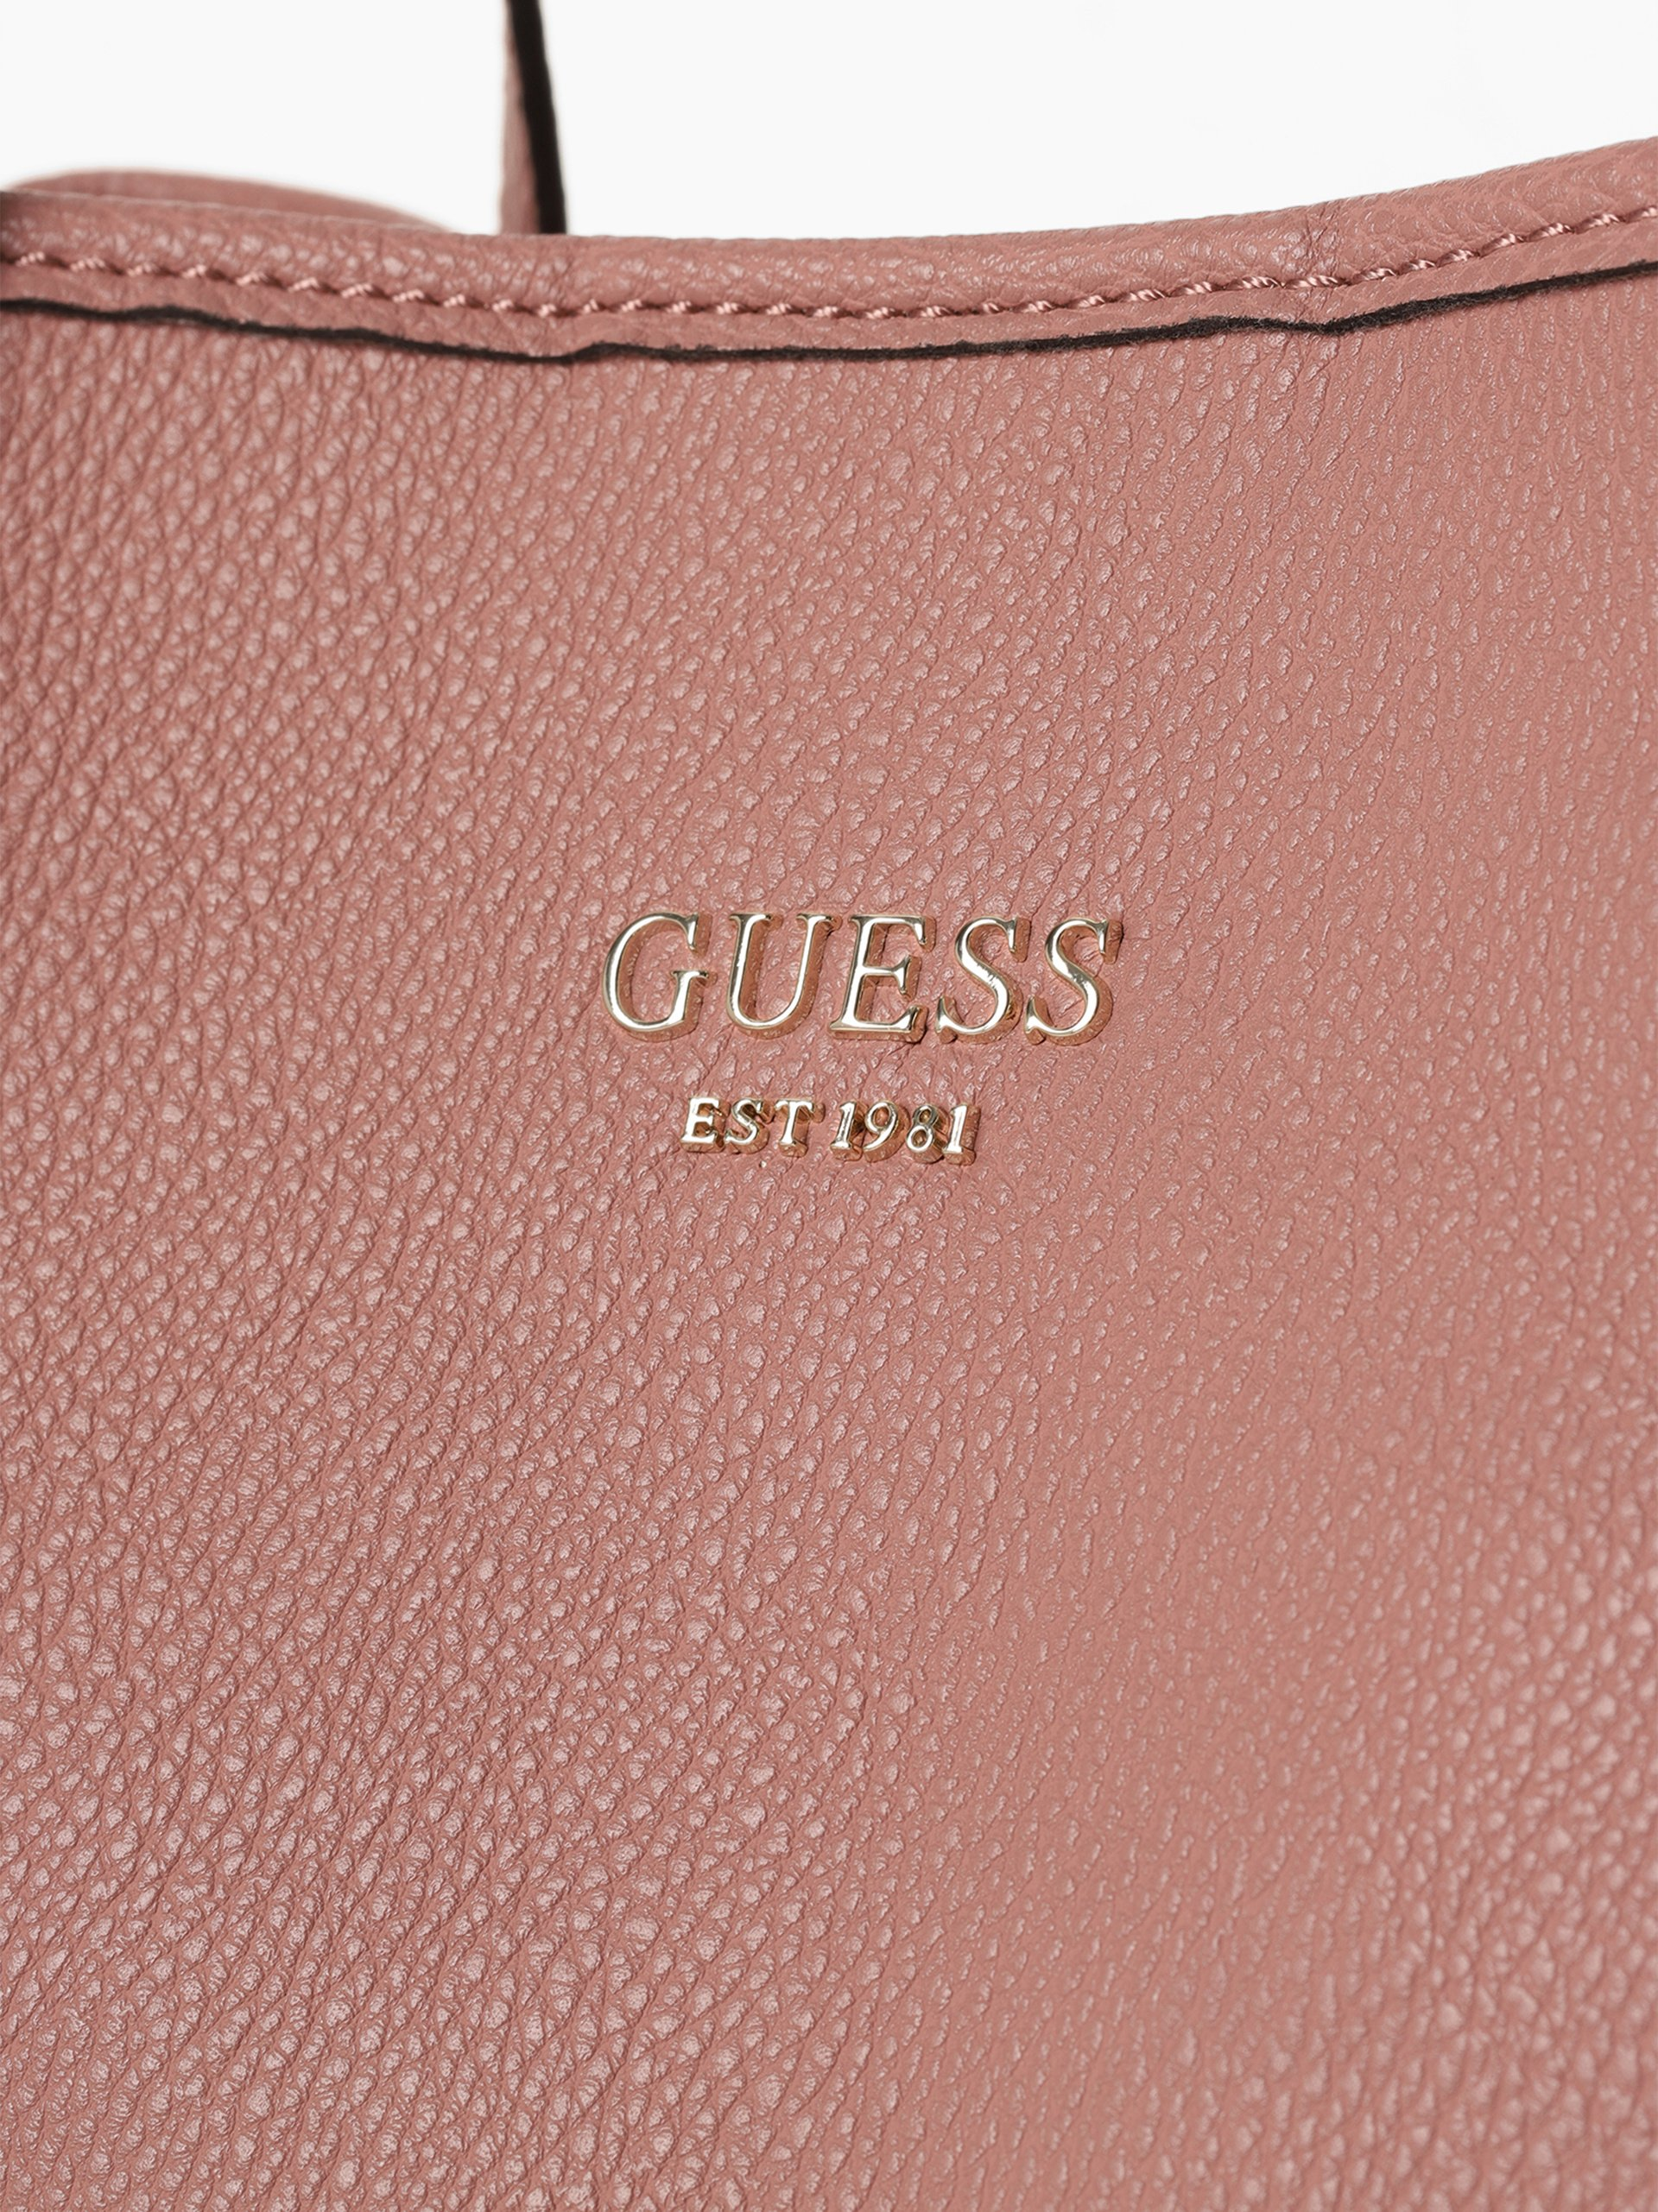 Guess Jeans Damen Shopper